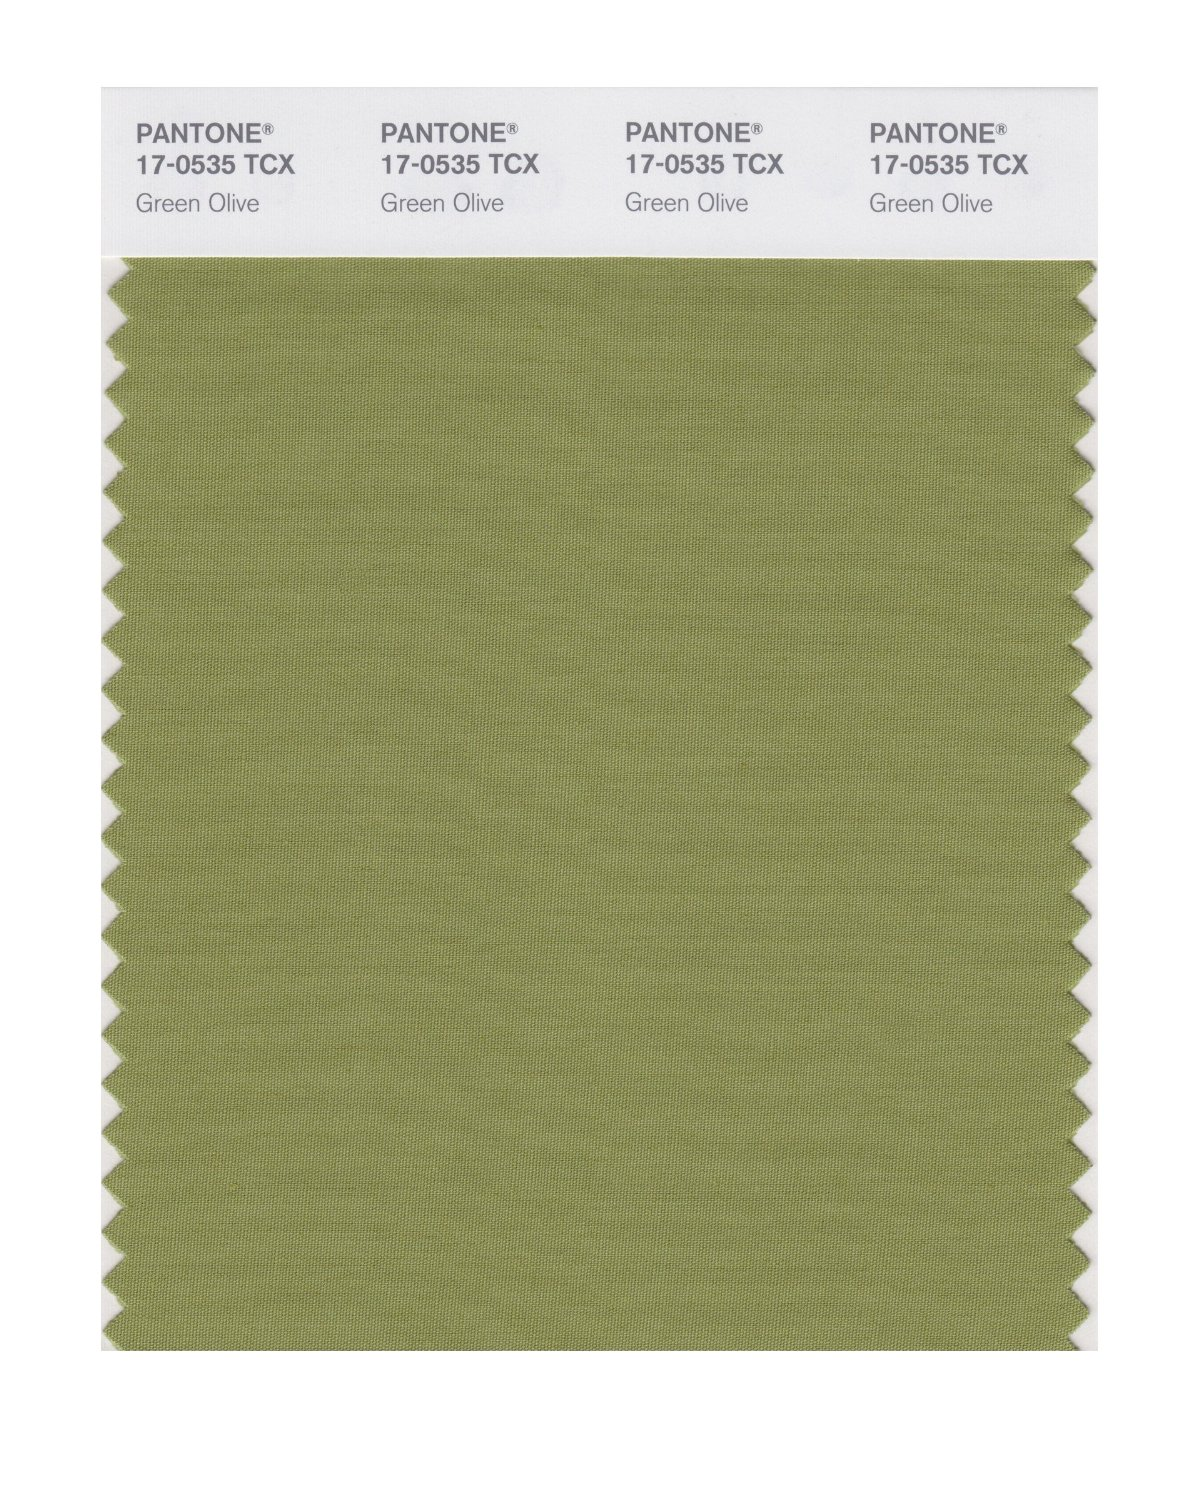 Pantone Smart Swatch 17-0535 Green Olive